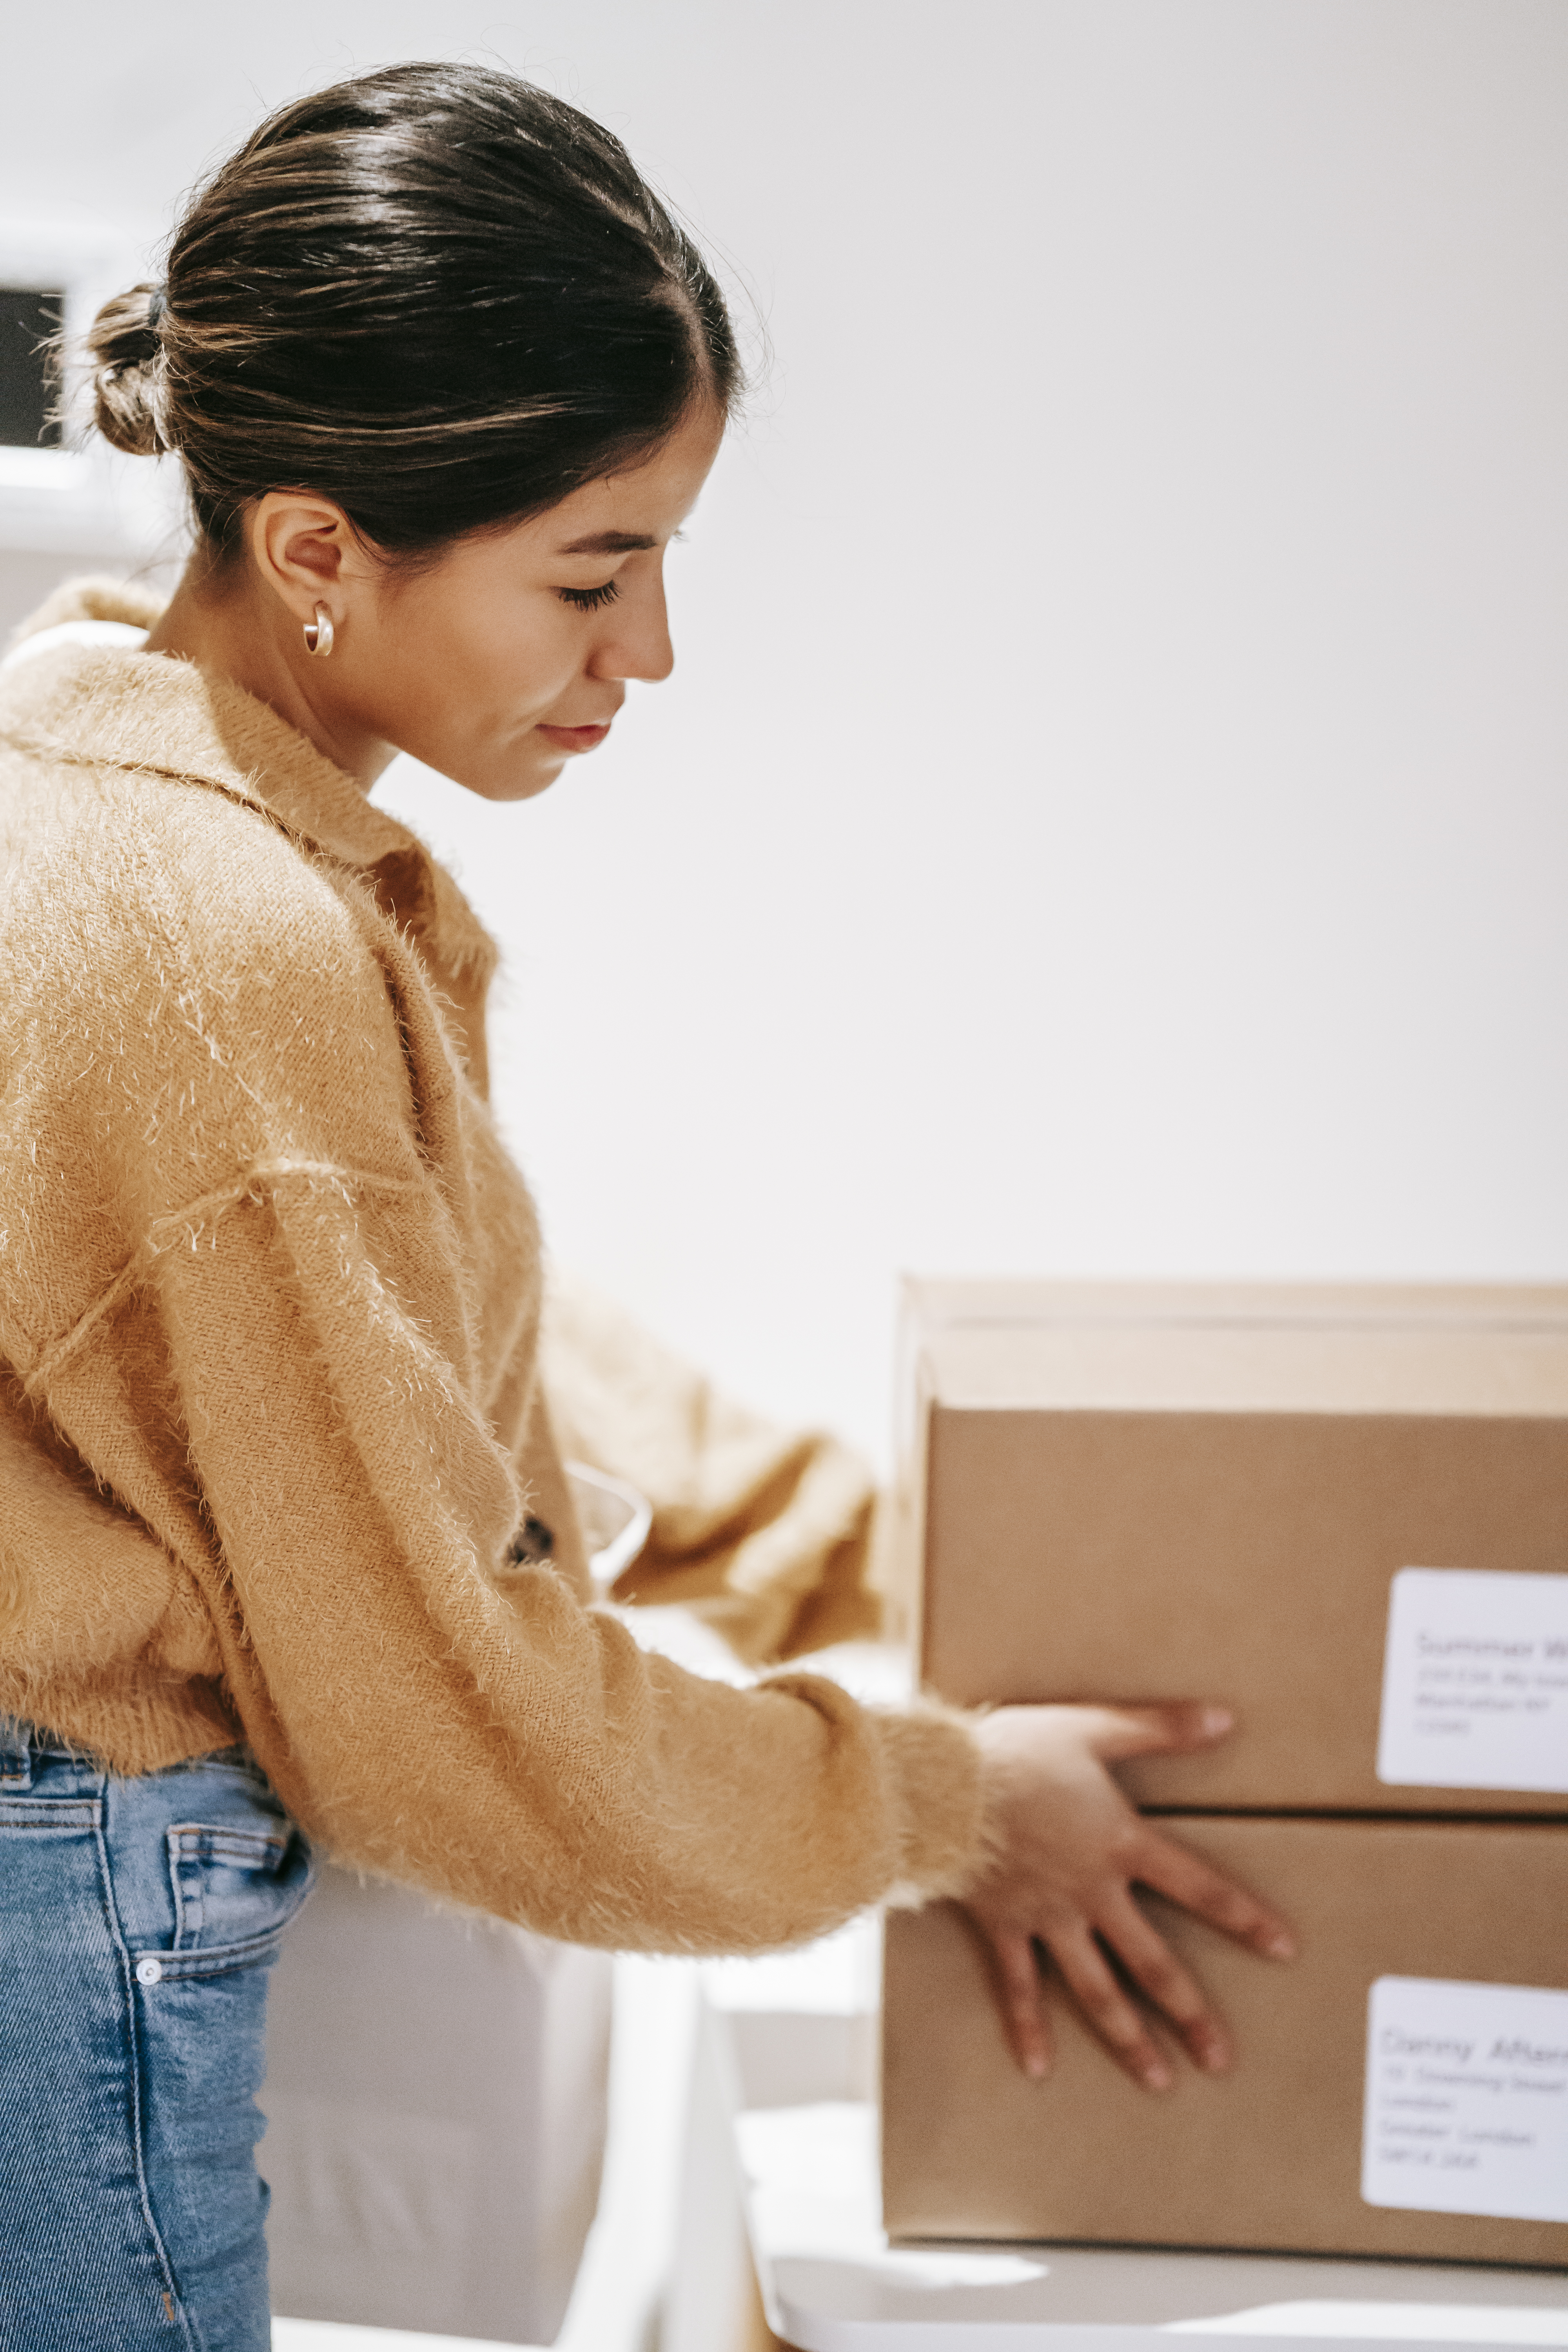 young woman with delivered carton boxes